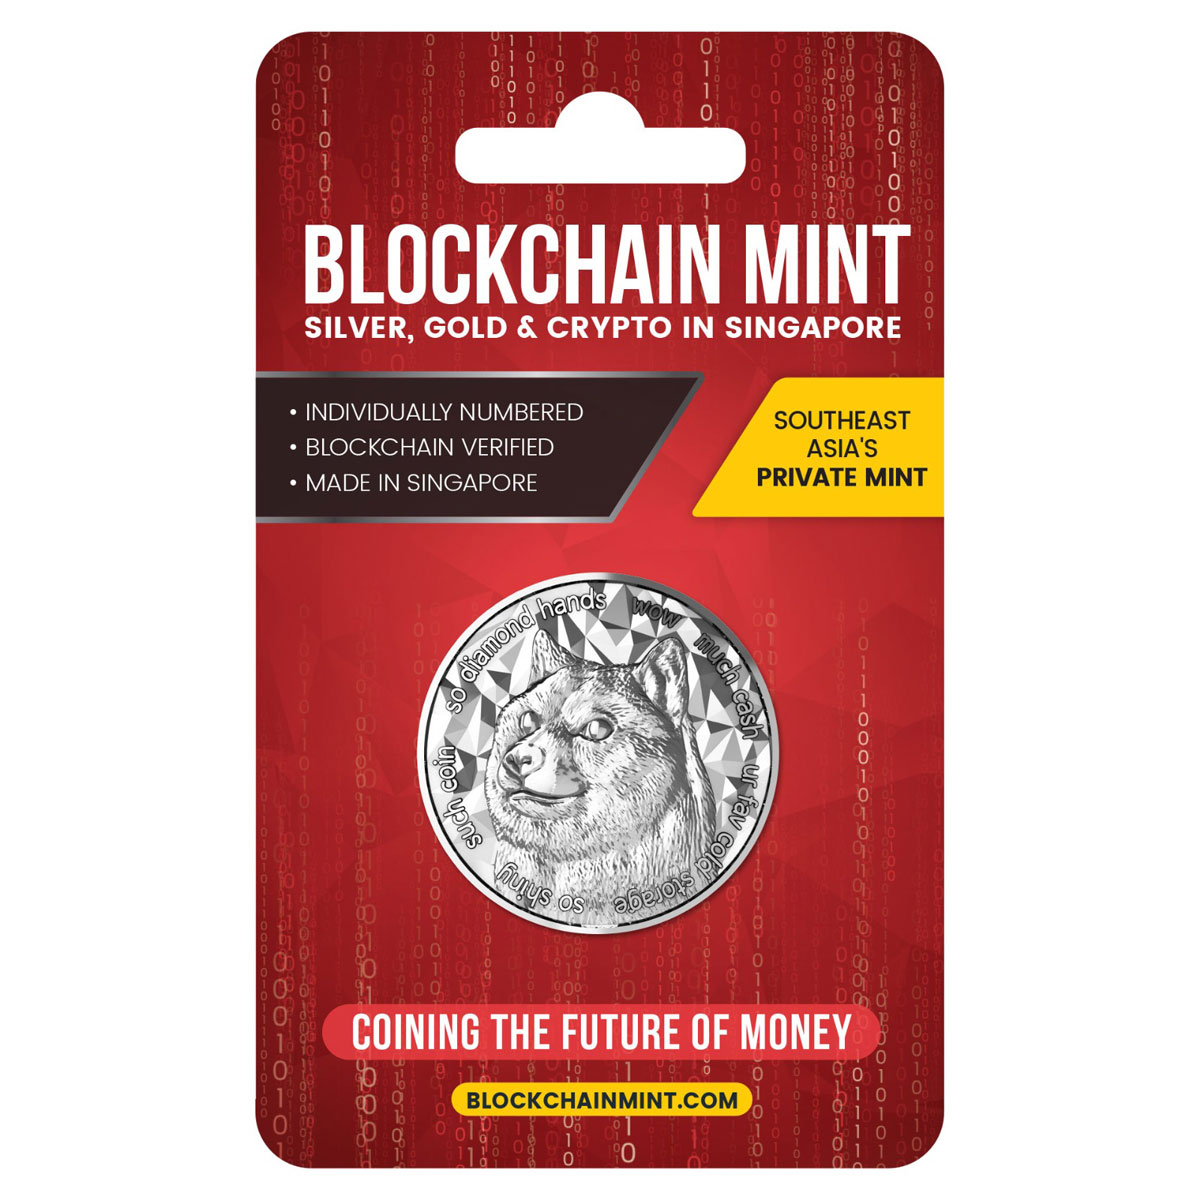 2021 Blockchain Mint DogeCoin Cryptocurrency Commemorative 1 oz Silver Proof Like Medal GEM Prooflike with Blister Pack